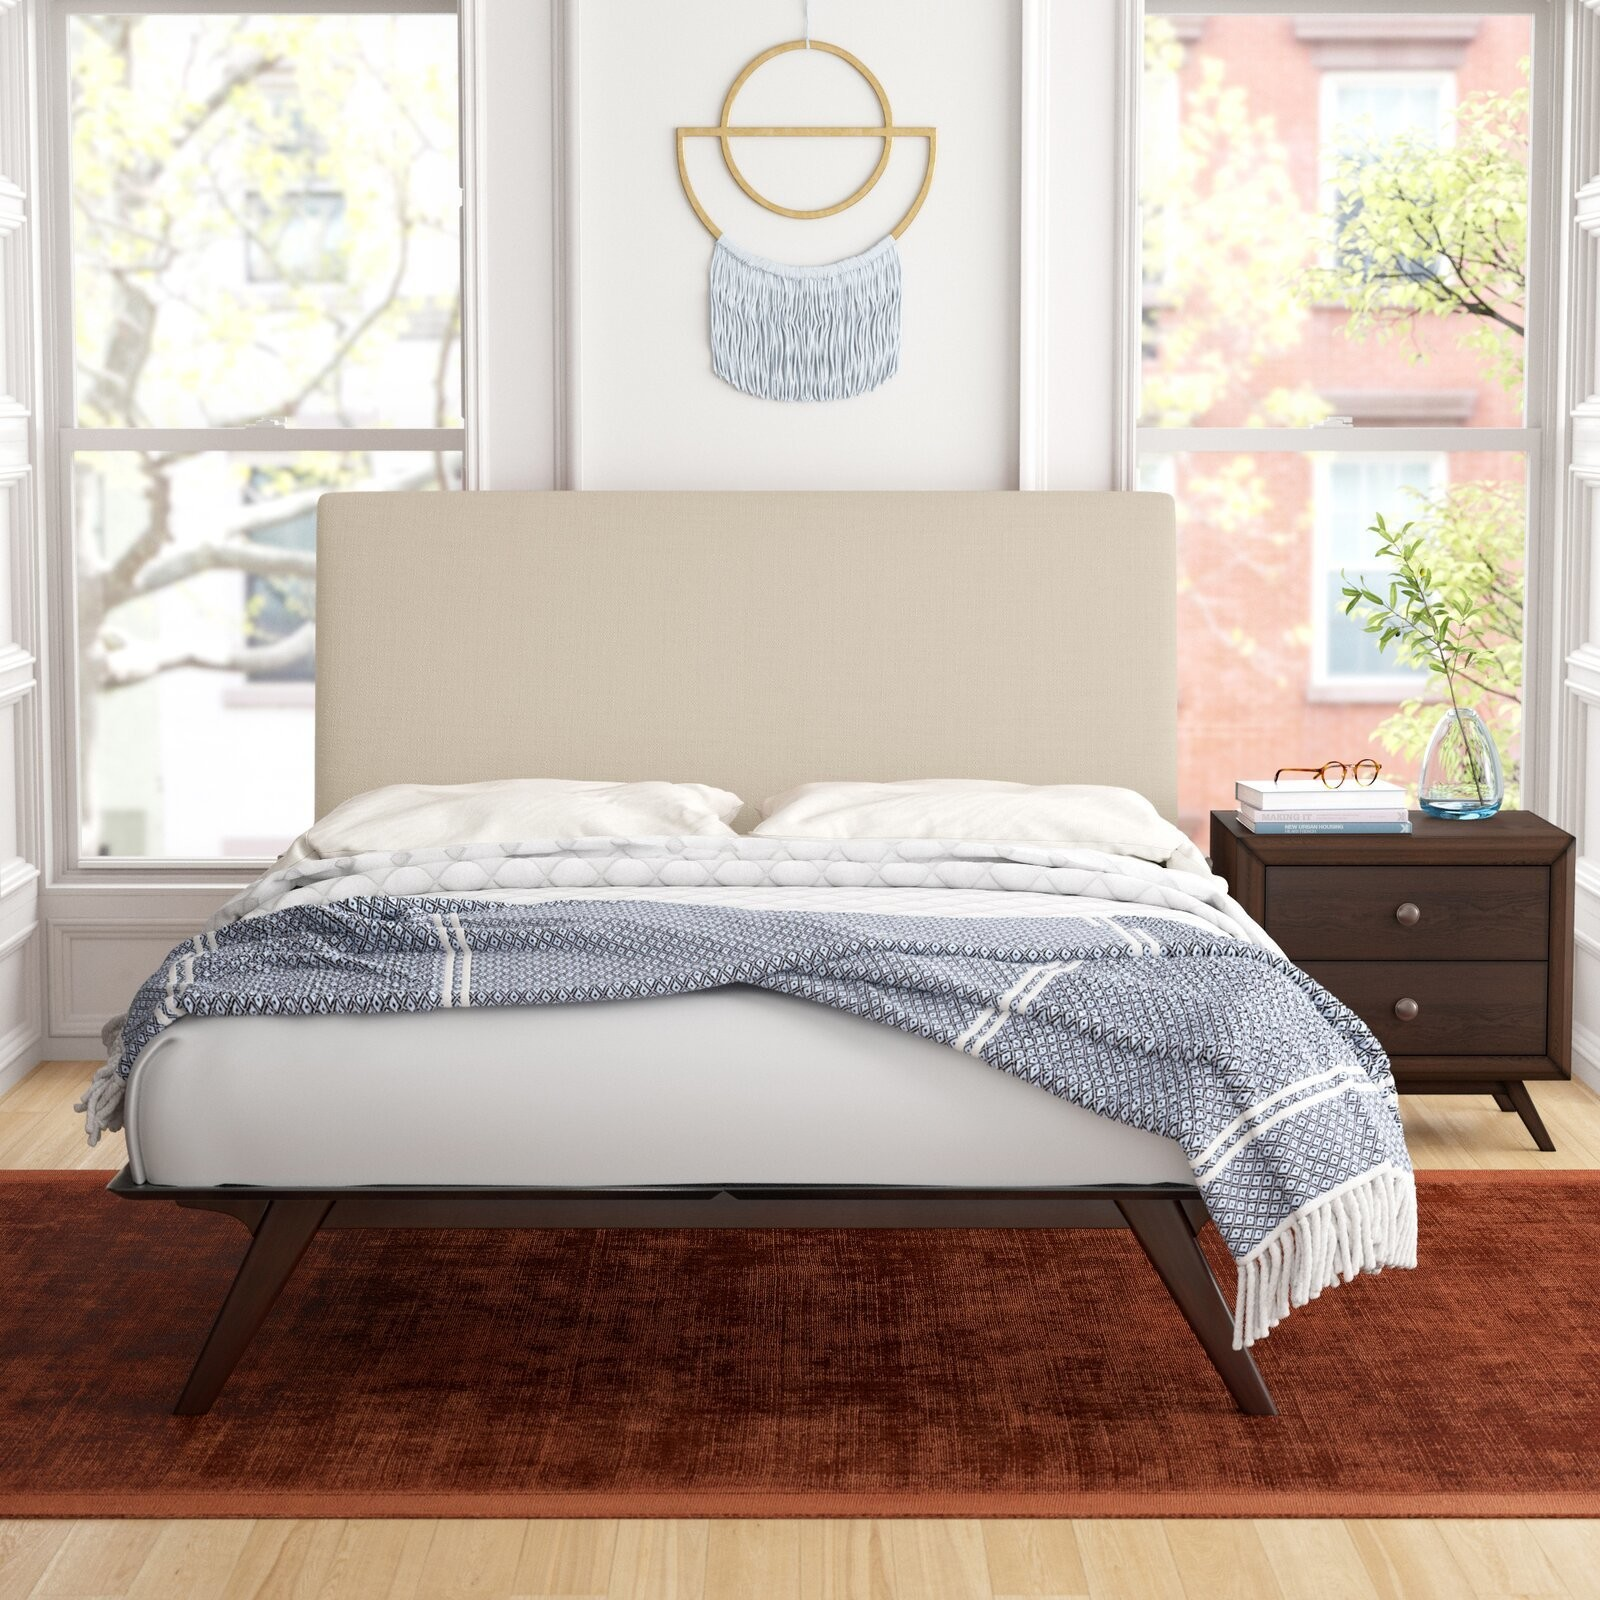 The Best Affordable Bedroom Sets To Buy Online See It Now Lonny